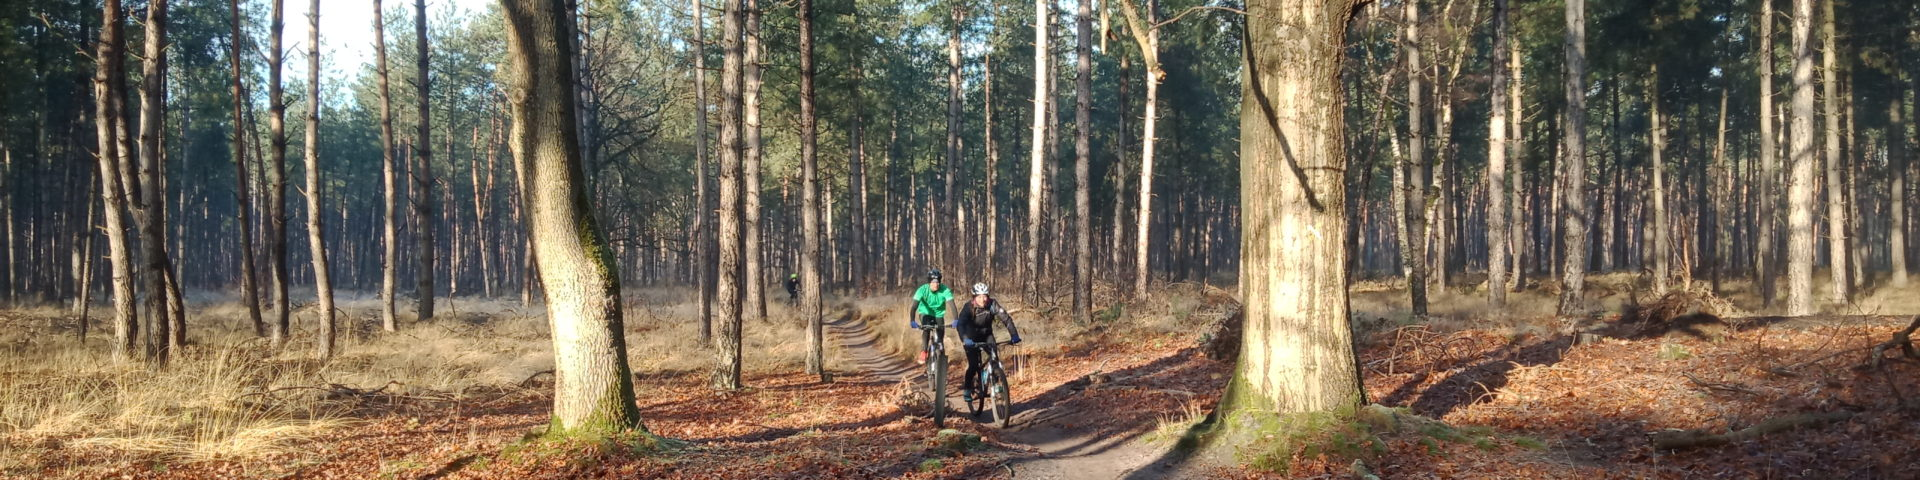 Mountainbiking 6th February